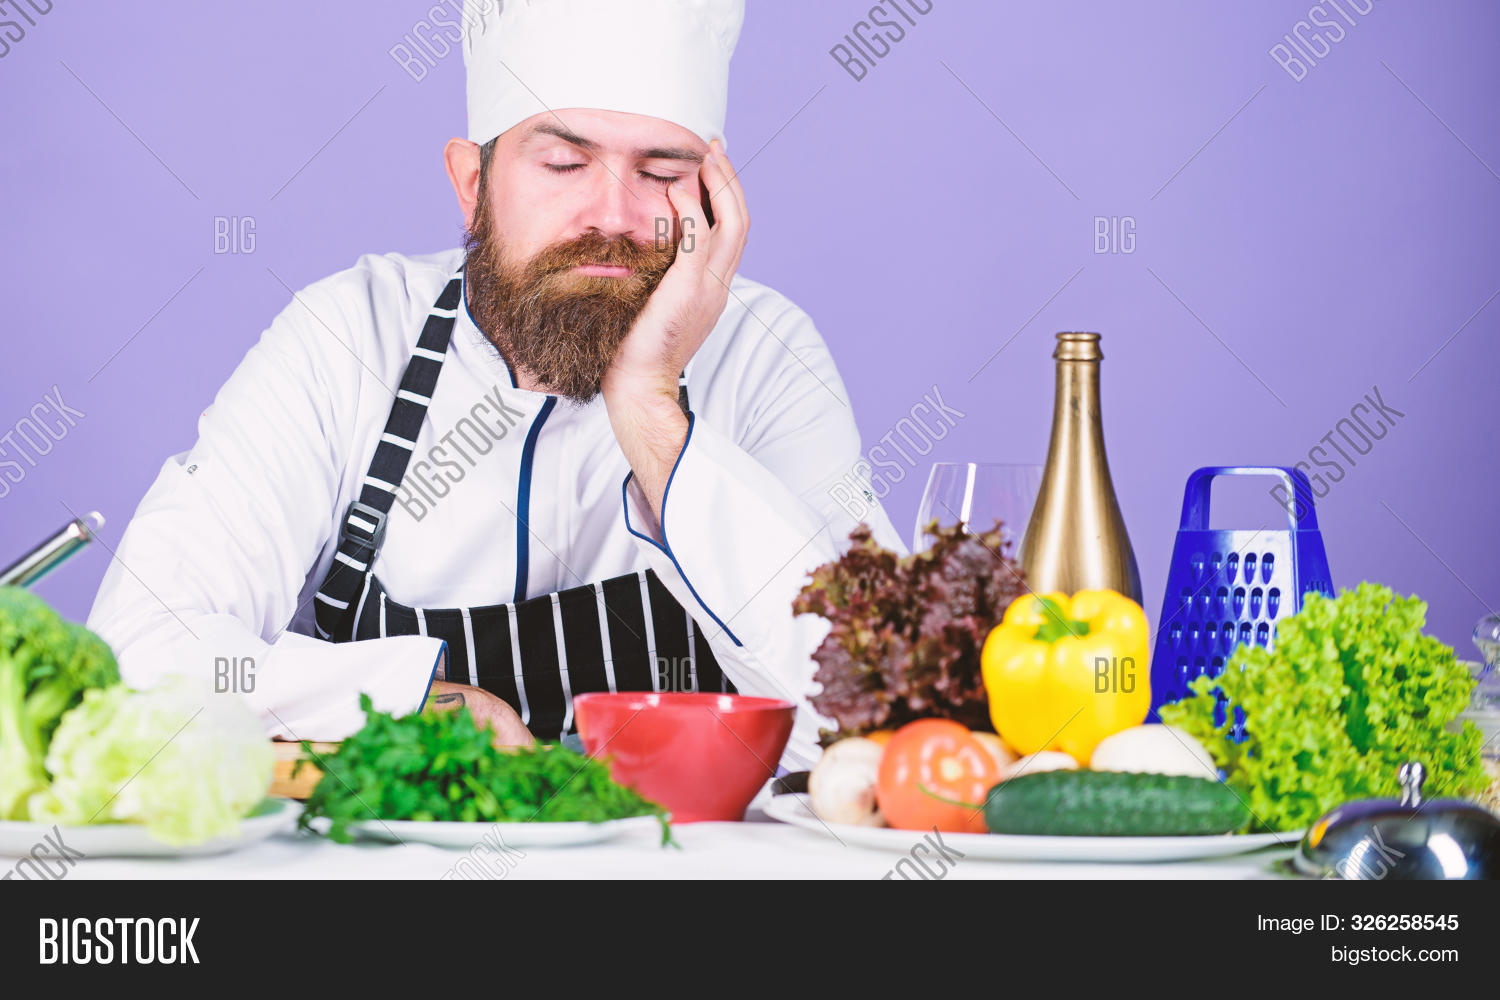 apron,background,bearded,bored,boring,bowl,caucasian,chef,concept,cook,cooking,cuisine,culinary,day,diet,exhausted,face,fed,food,fresh,hard,hat,healthy,ingredient,inspiration,kitchen,lean,looking,man,meal,nutrition,preparation,prepare,restaurant,salad,seep,serve,spoiled,table,tired,tool,uniform,up,vegetables,vegetarian,vitamin,work